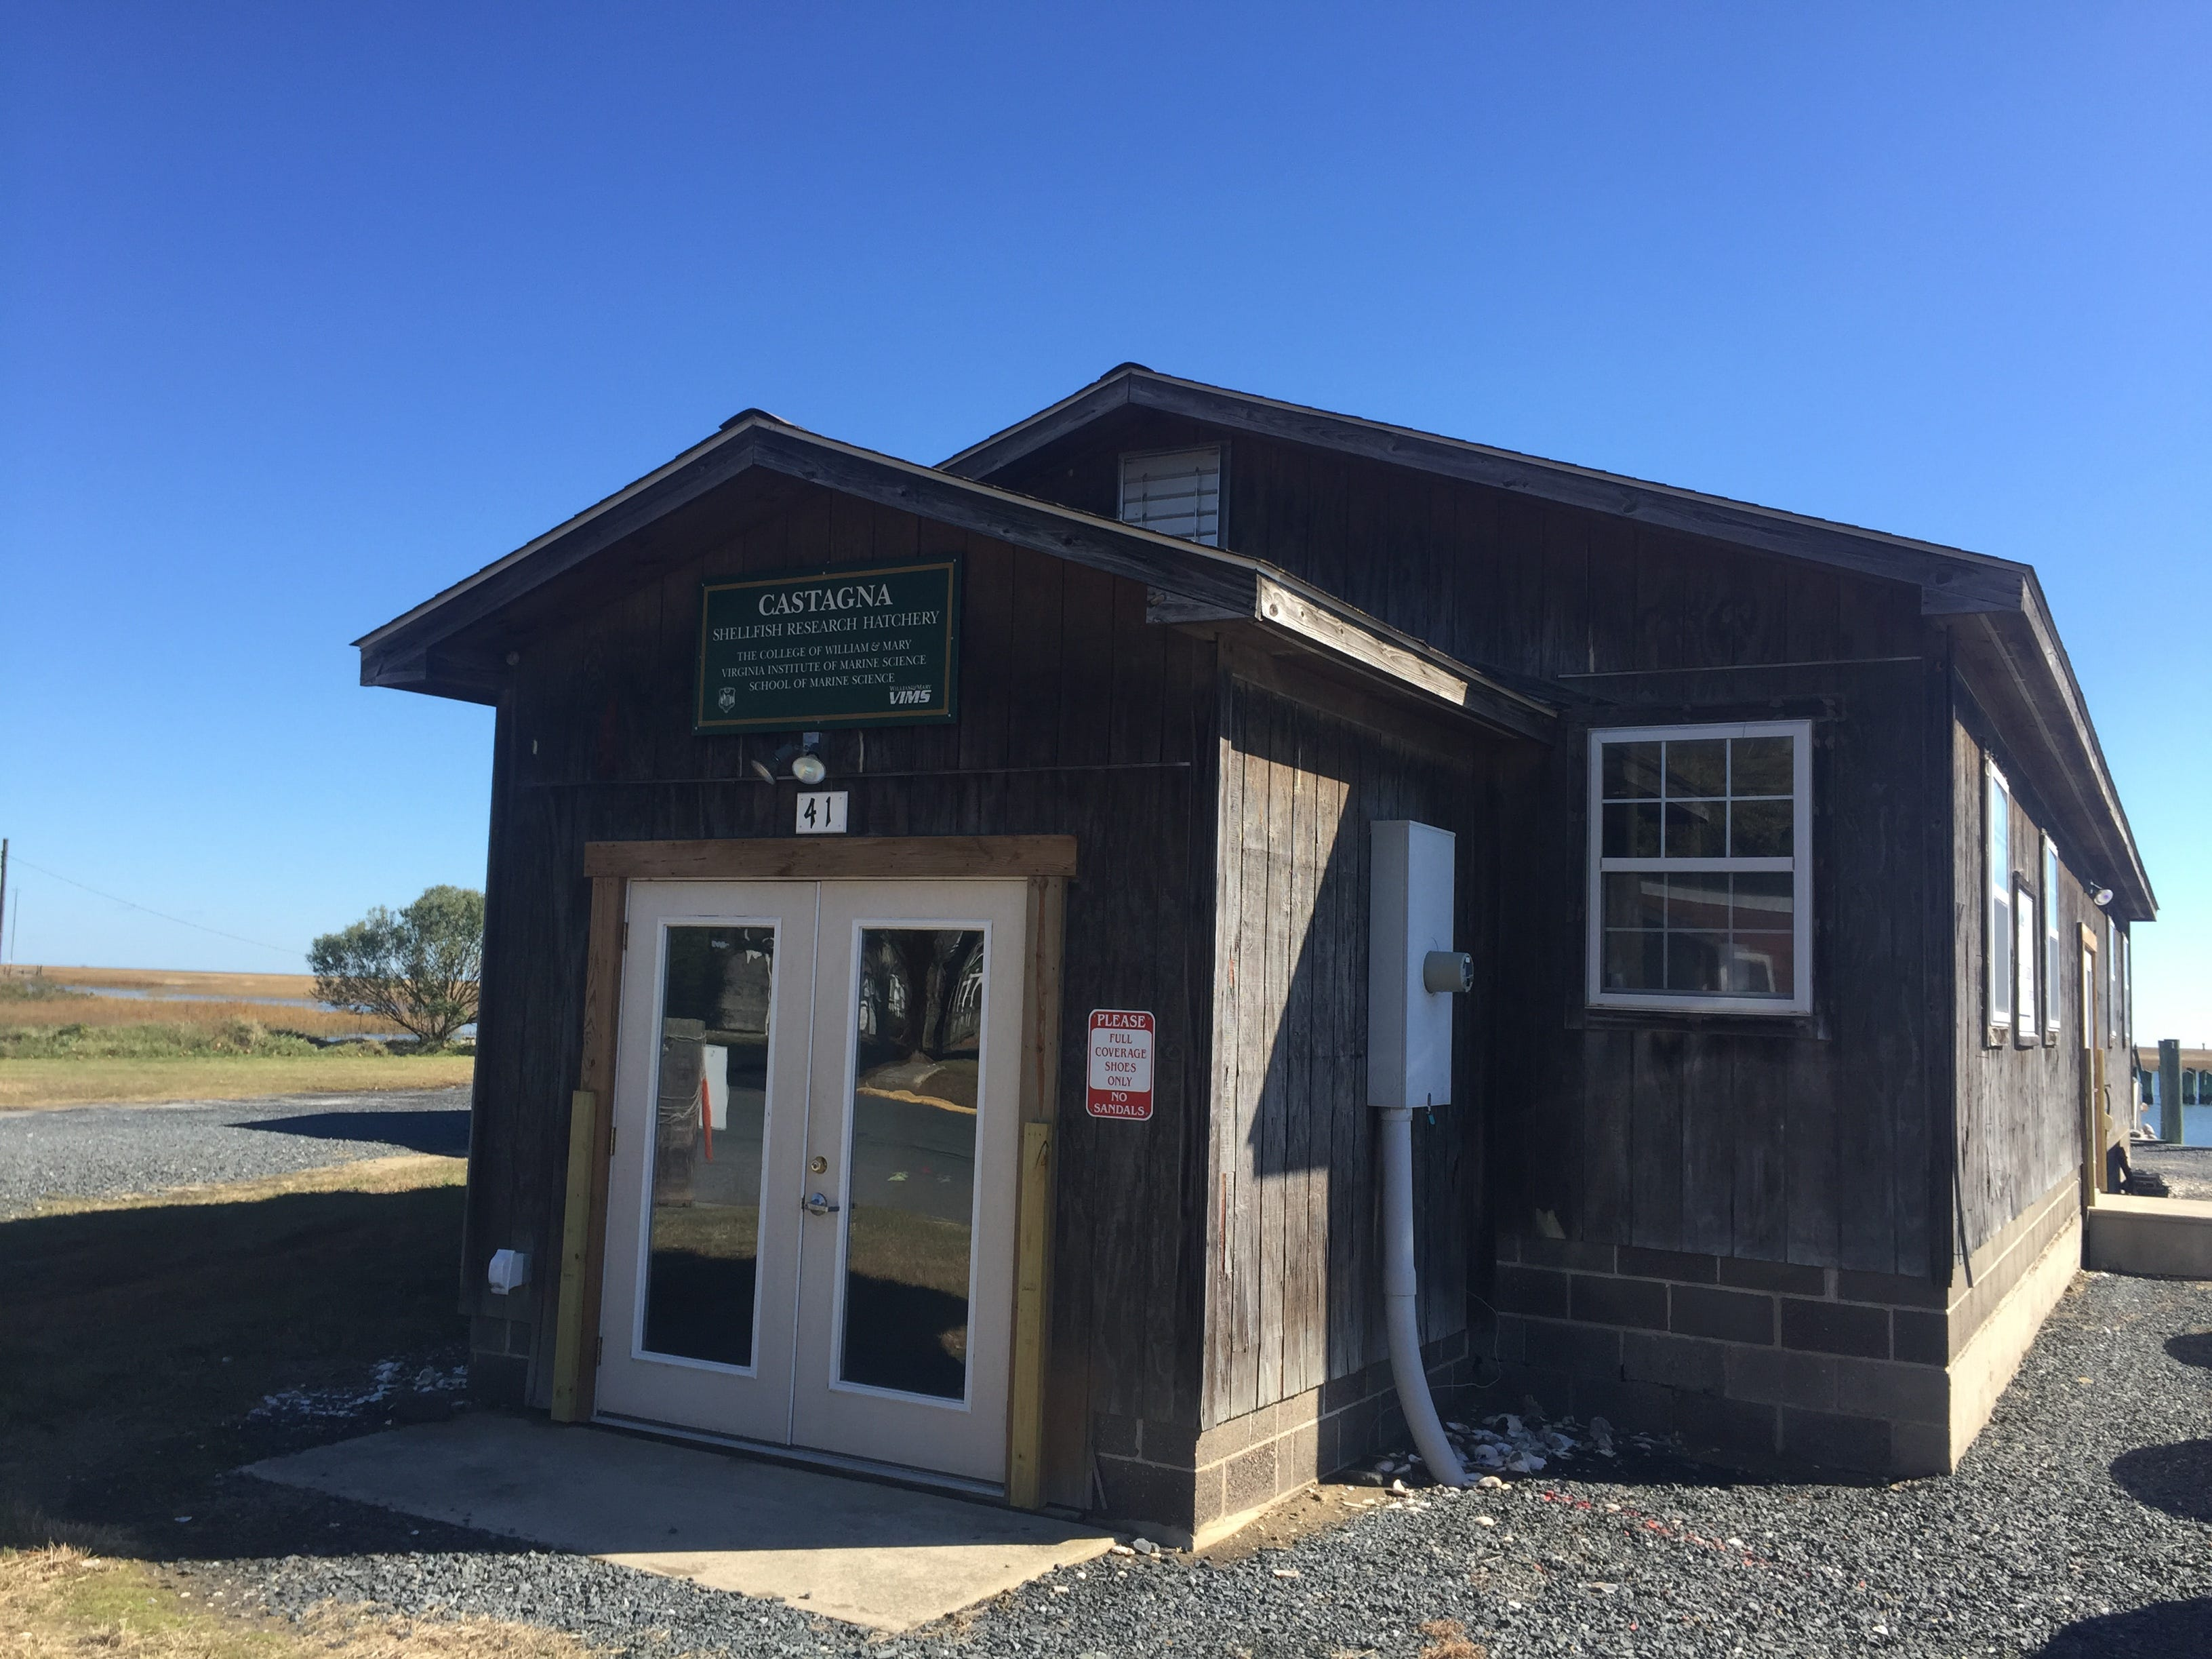 The Castagna Research Lab at VIMS-Eastern Shore Lab in Wachapreague, Virginia is one of the buildings that will be replaced in major construction announced in October 2018.